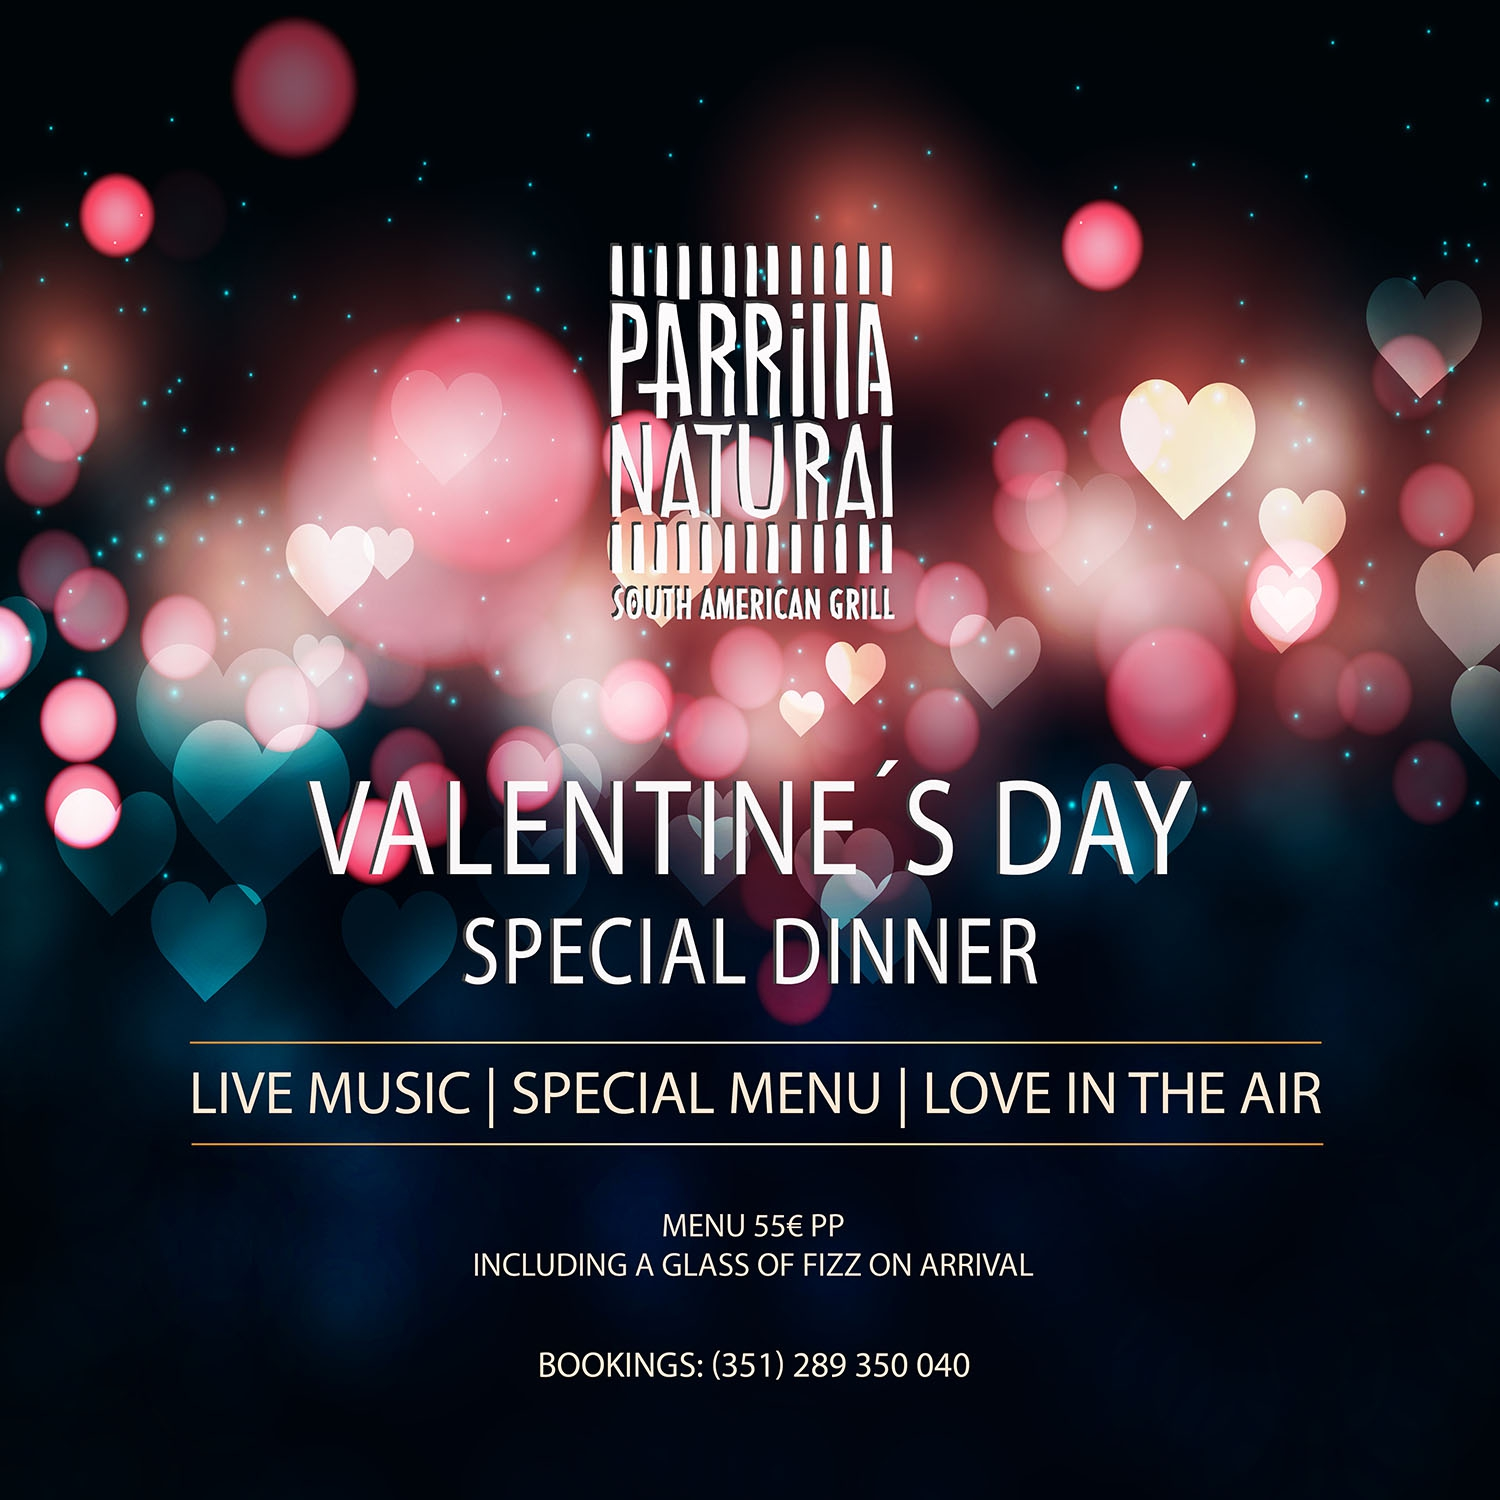 Celebrate Valentine's Day at Parrilla Natural